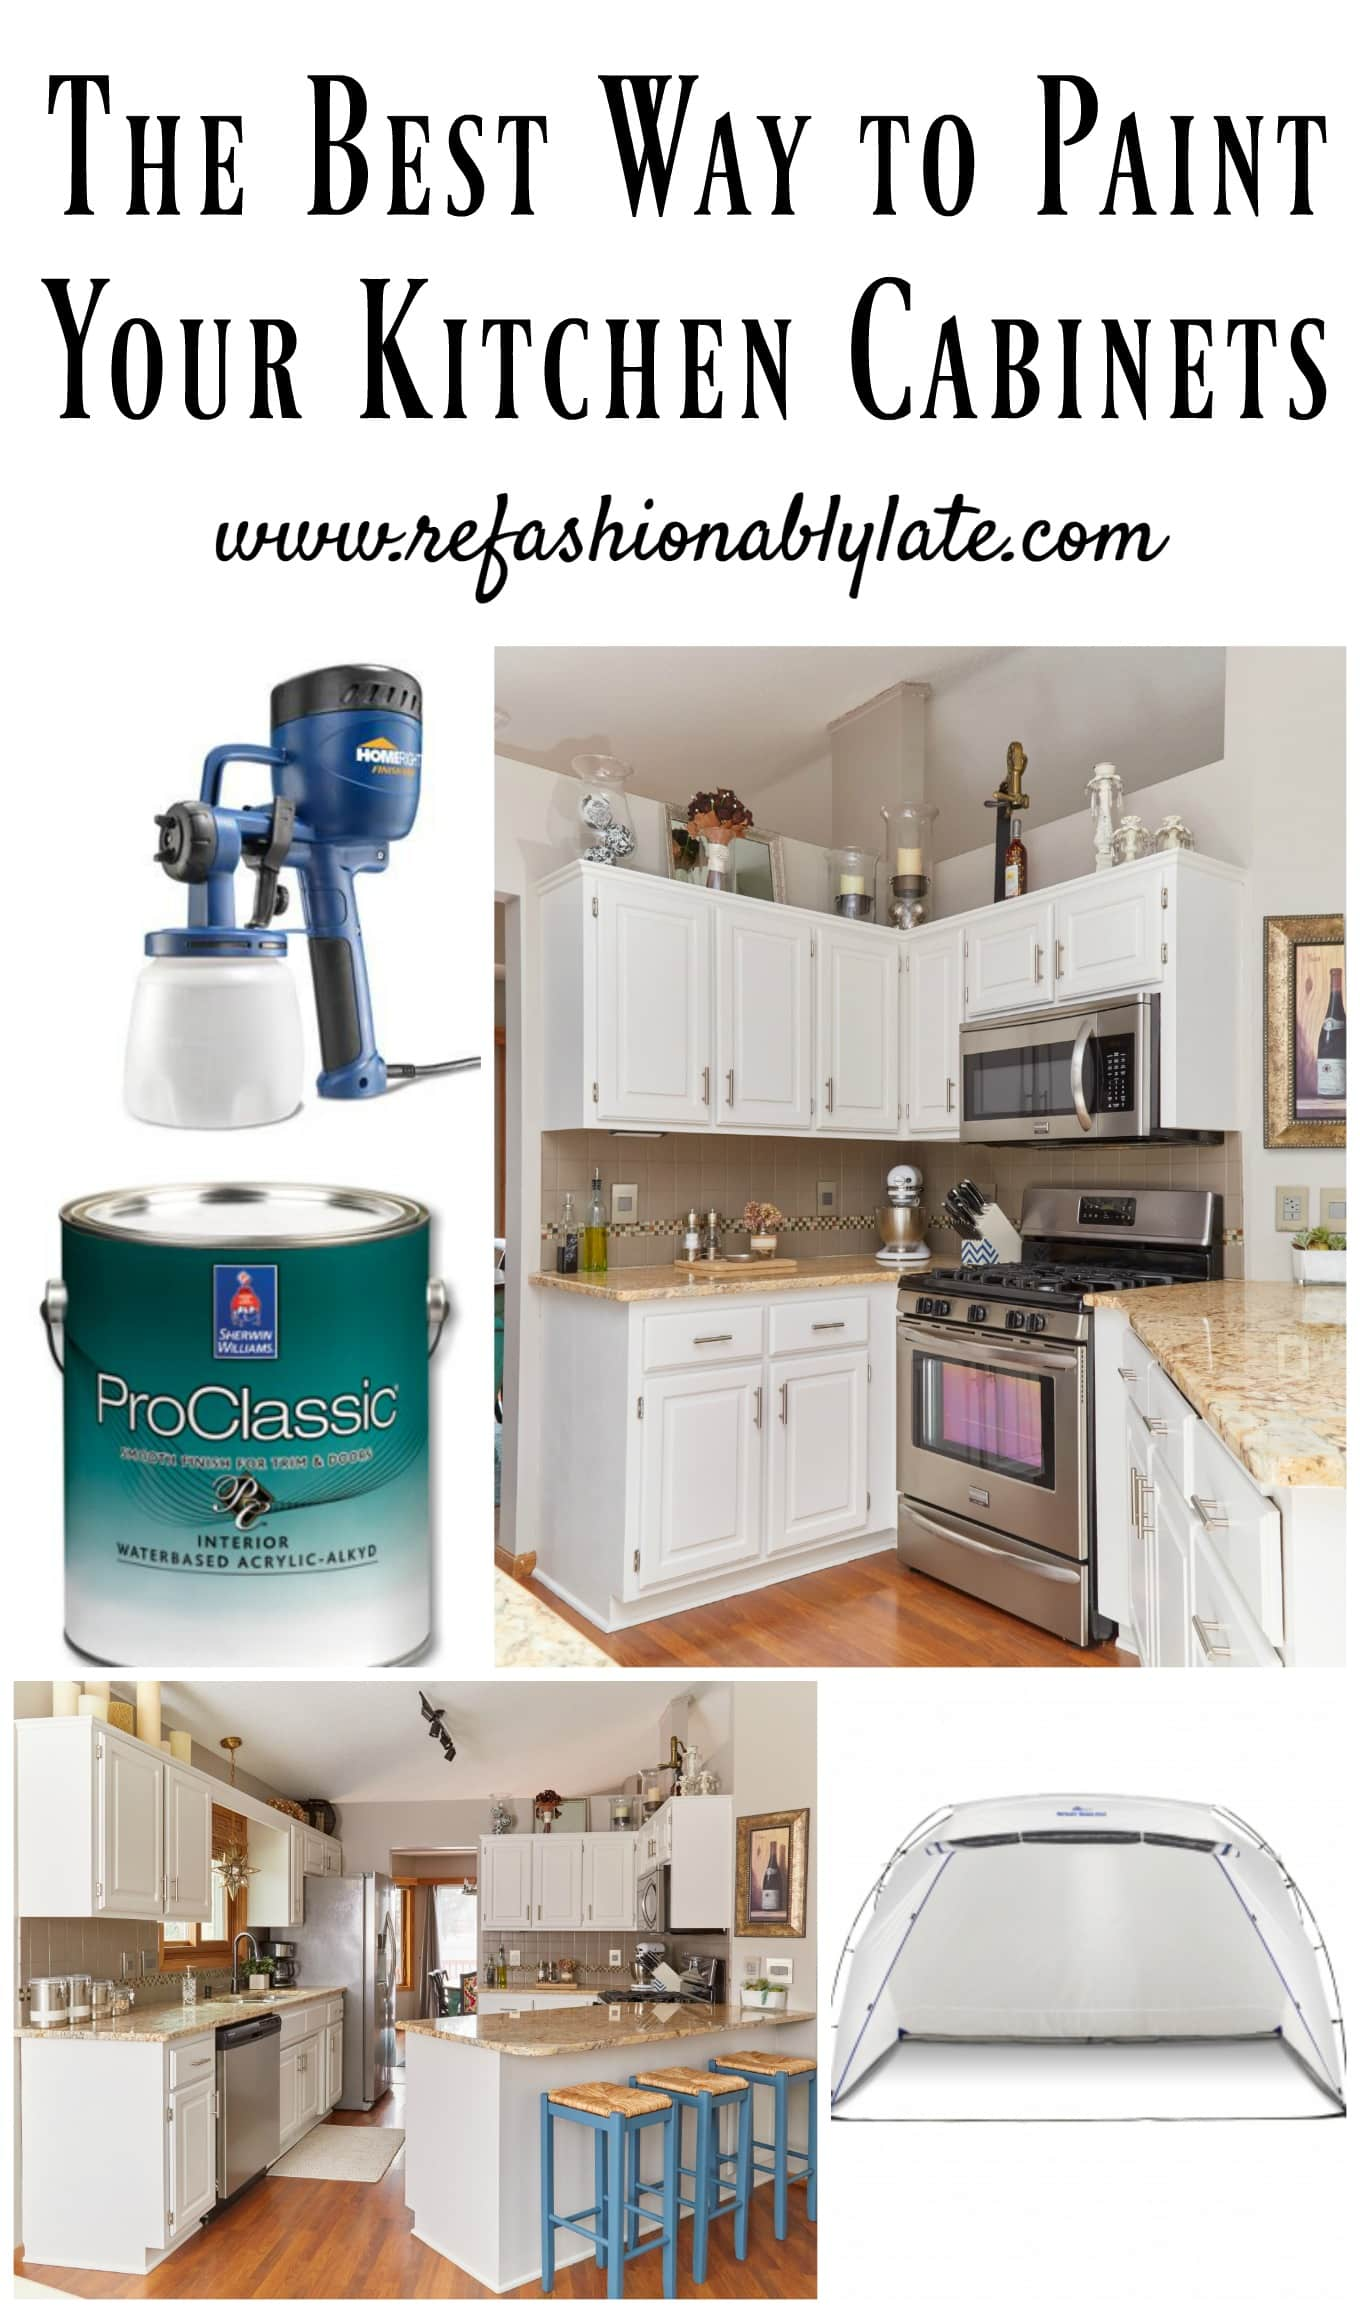 The Best Way To Paint Your Kitchen Cabinets Refashionably Late